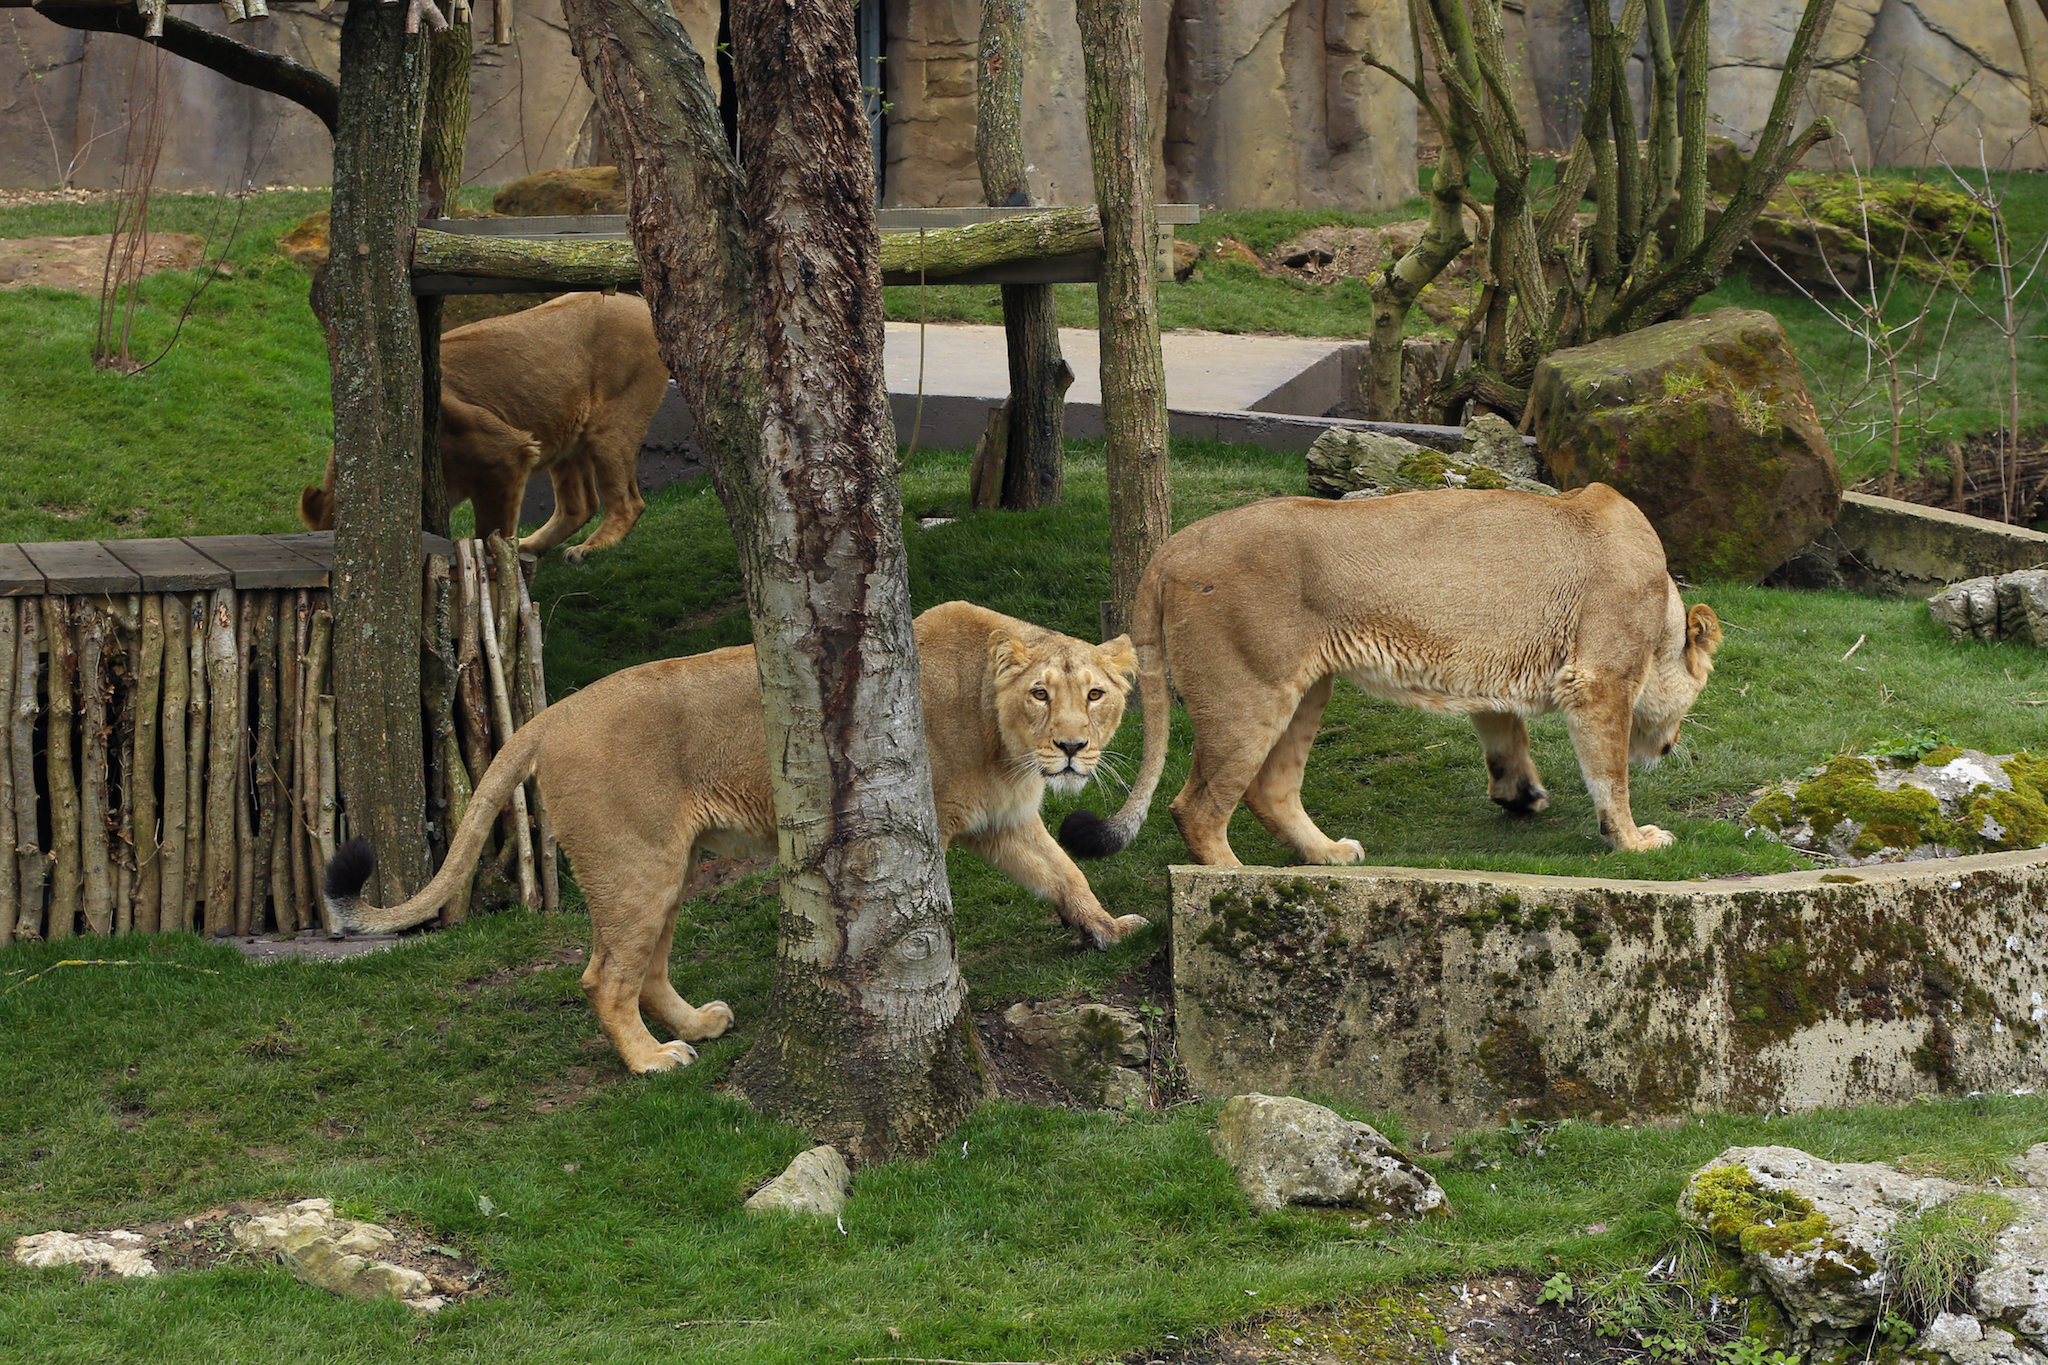 Asiatic Lionesses at ZSL London Zoo